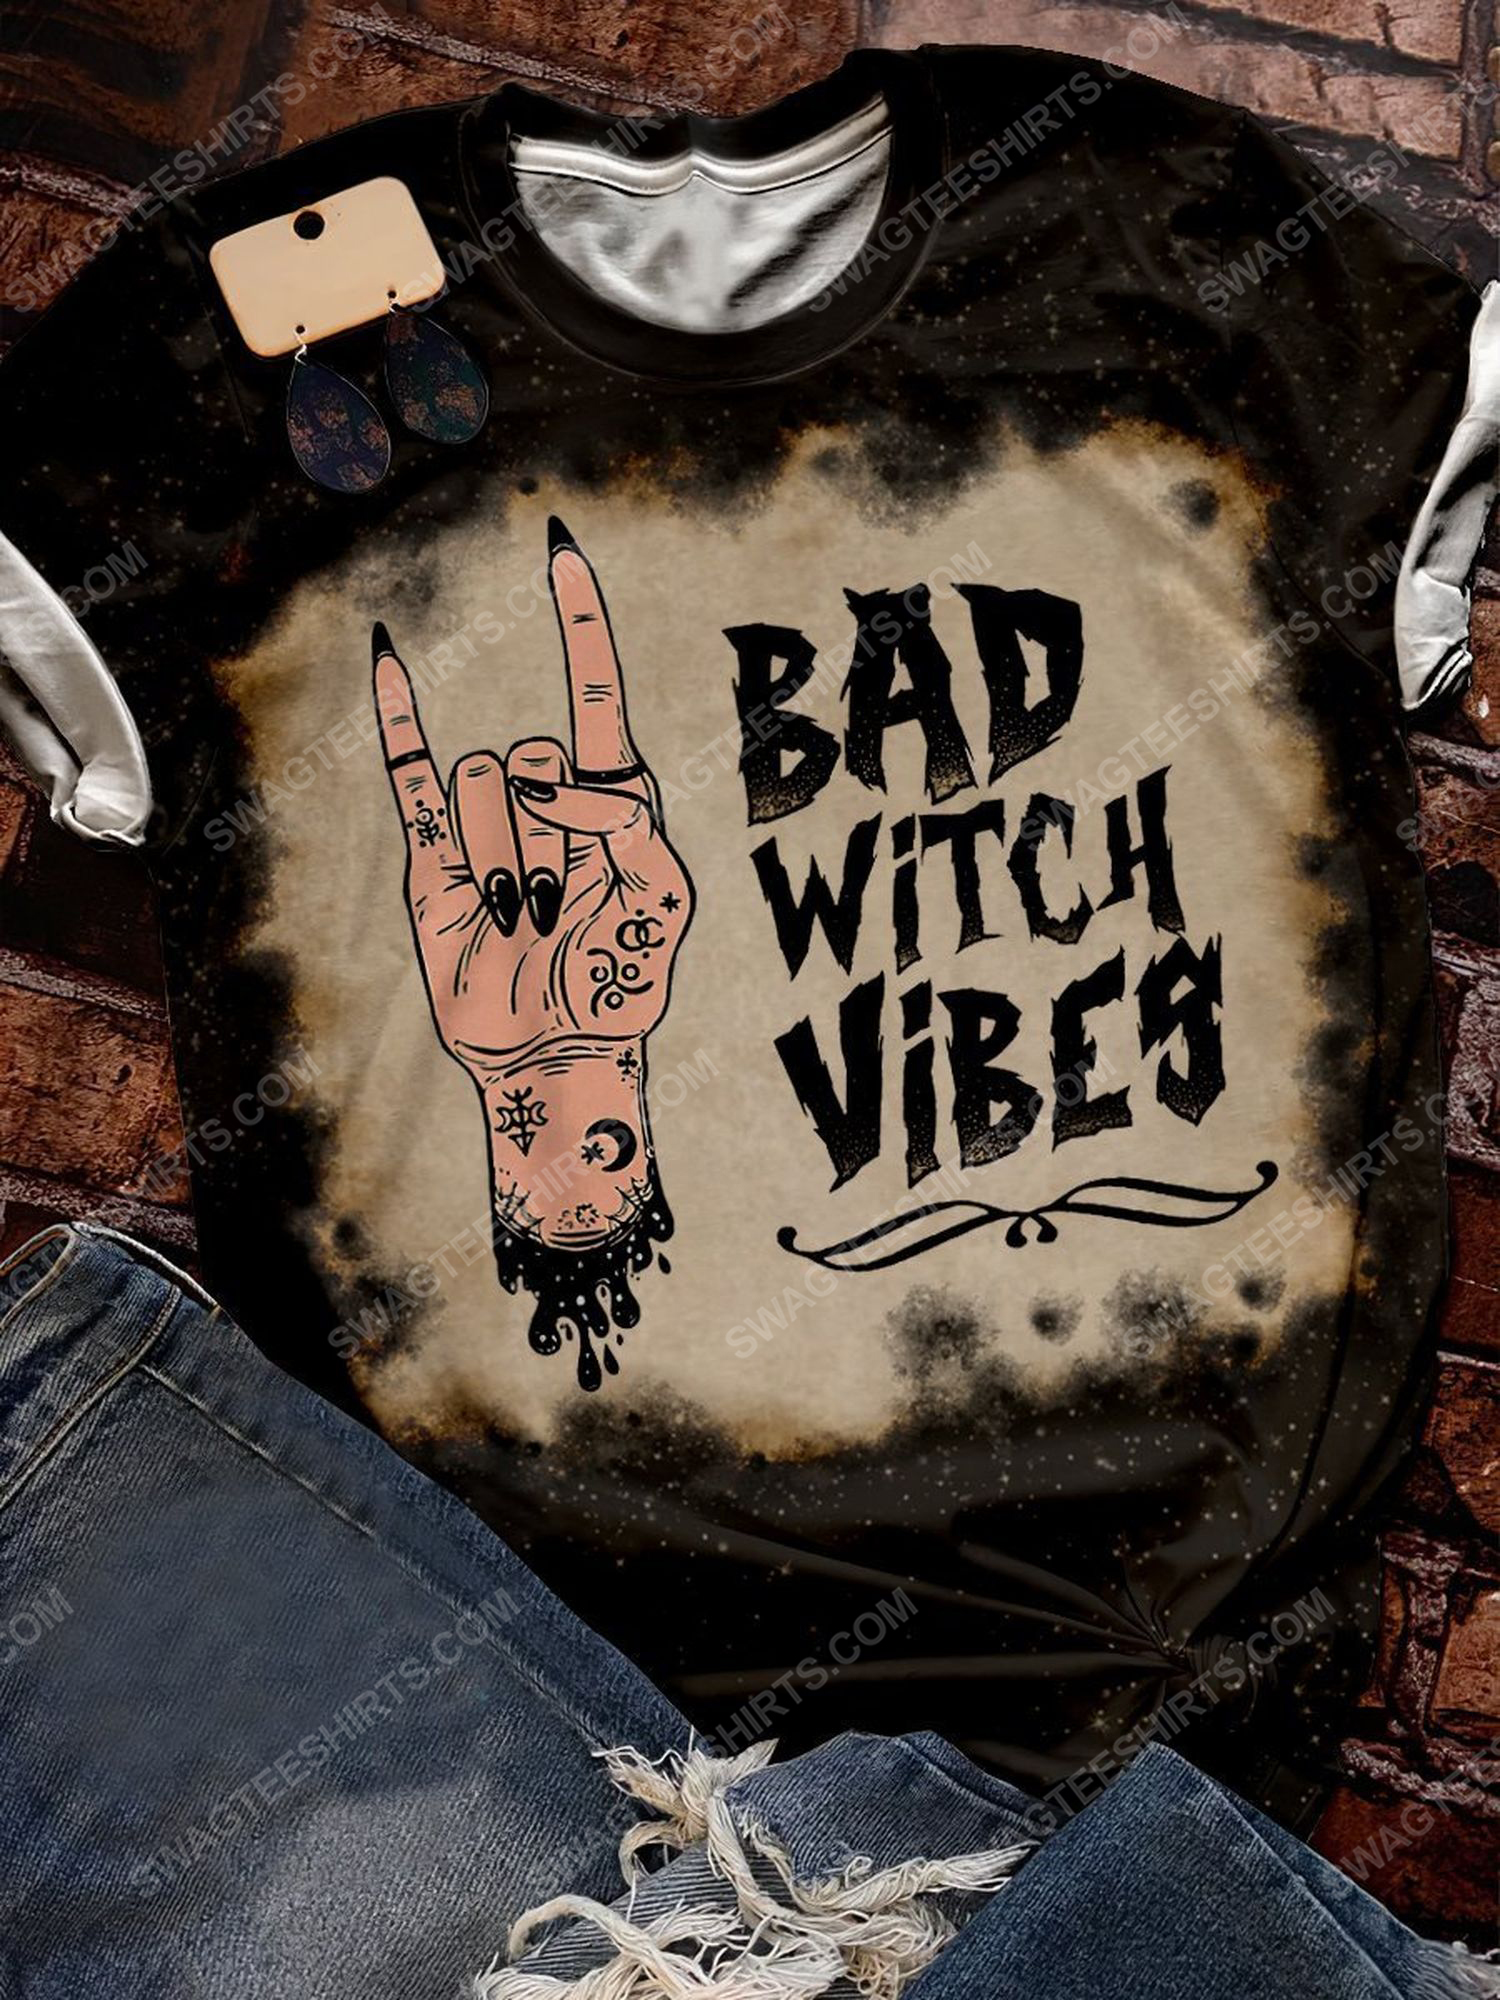 Halloween night bad witch vibes bleached shirt 1 - Copy (2)